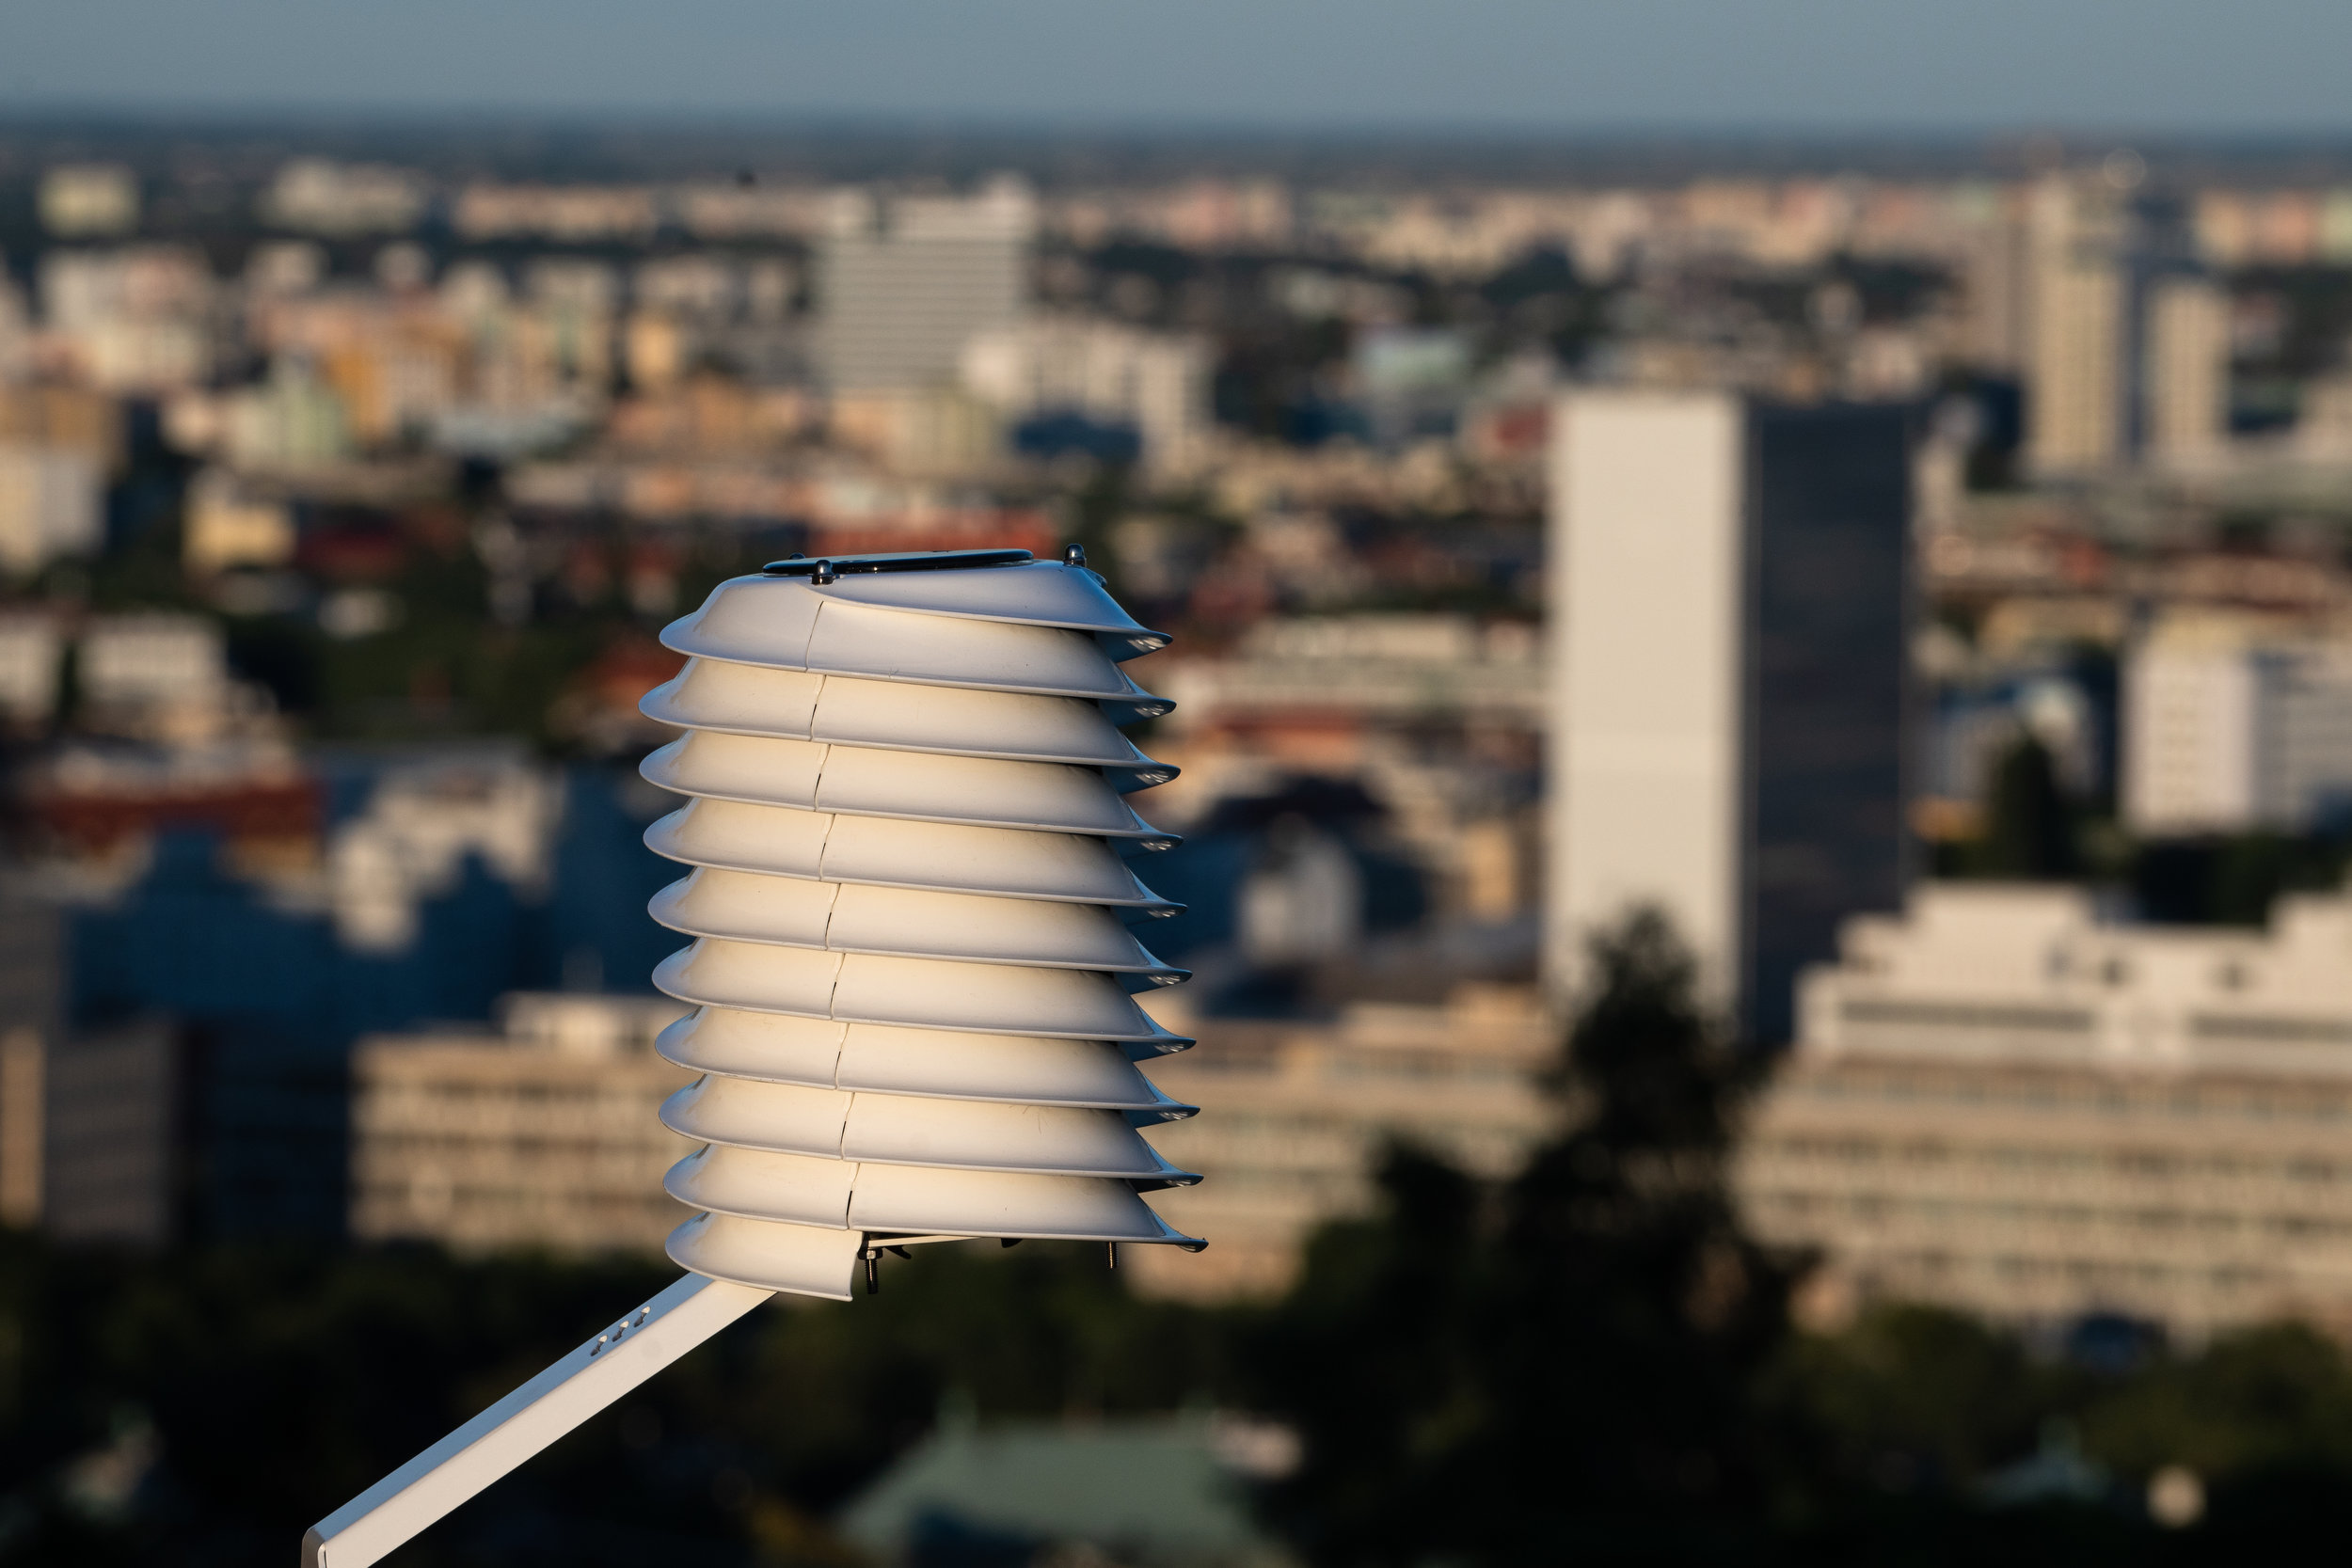 smart-cities weather station overlooking a city skyline in sunset